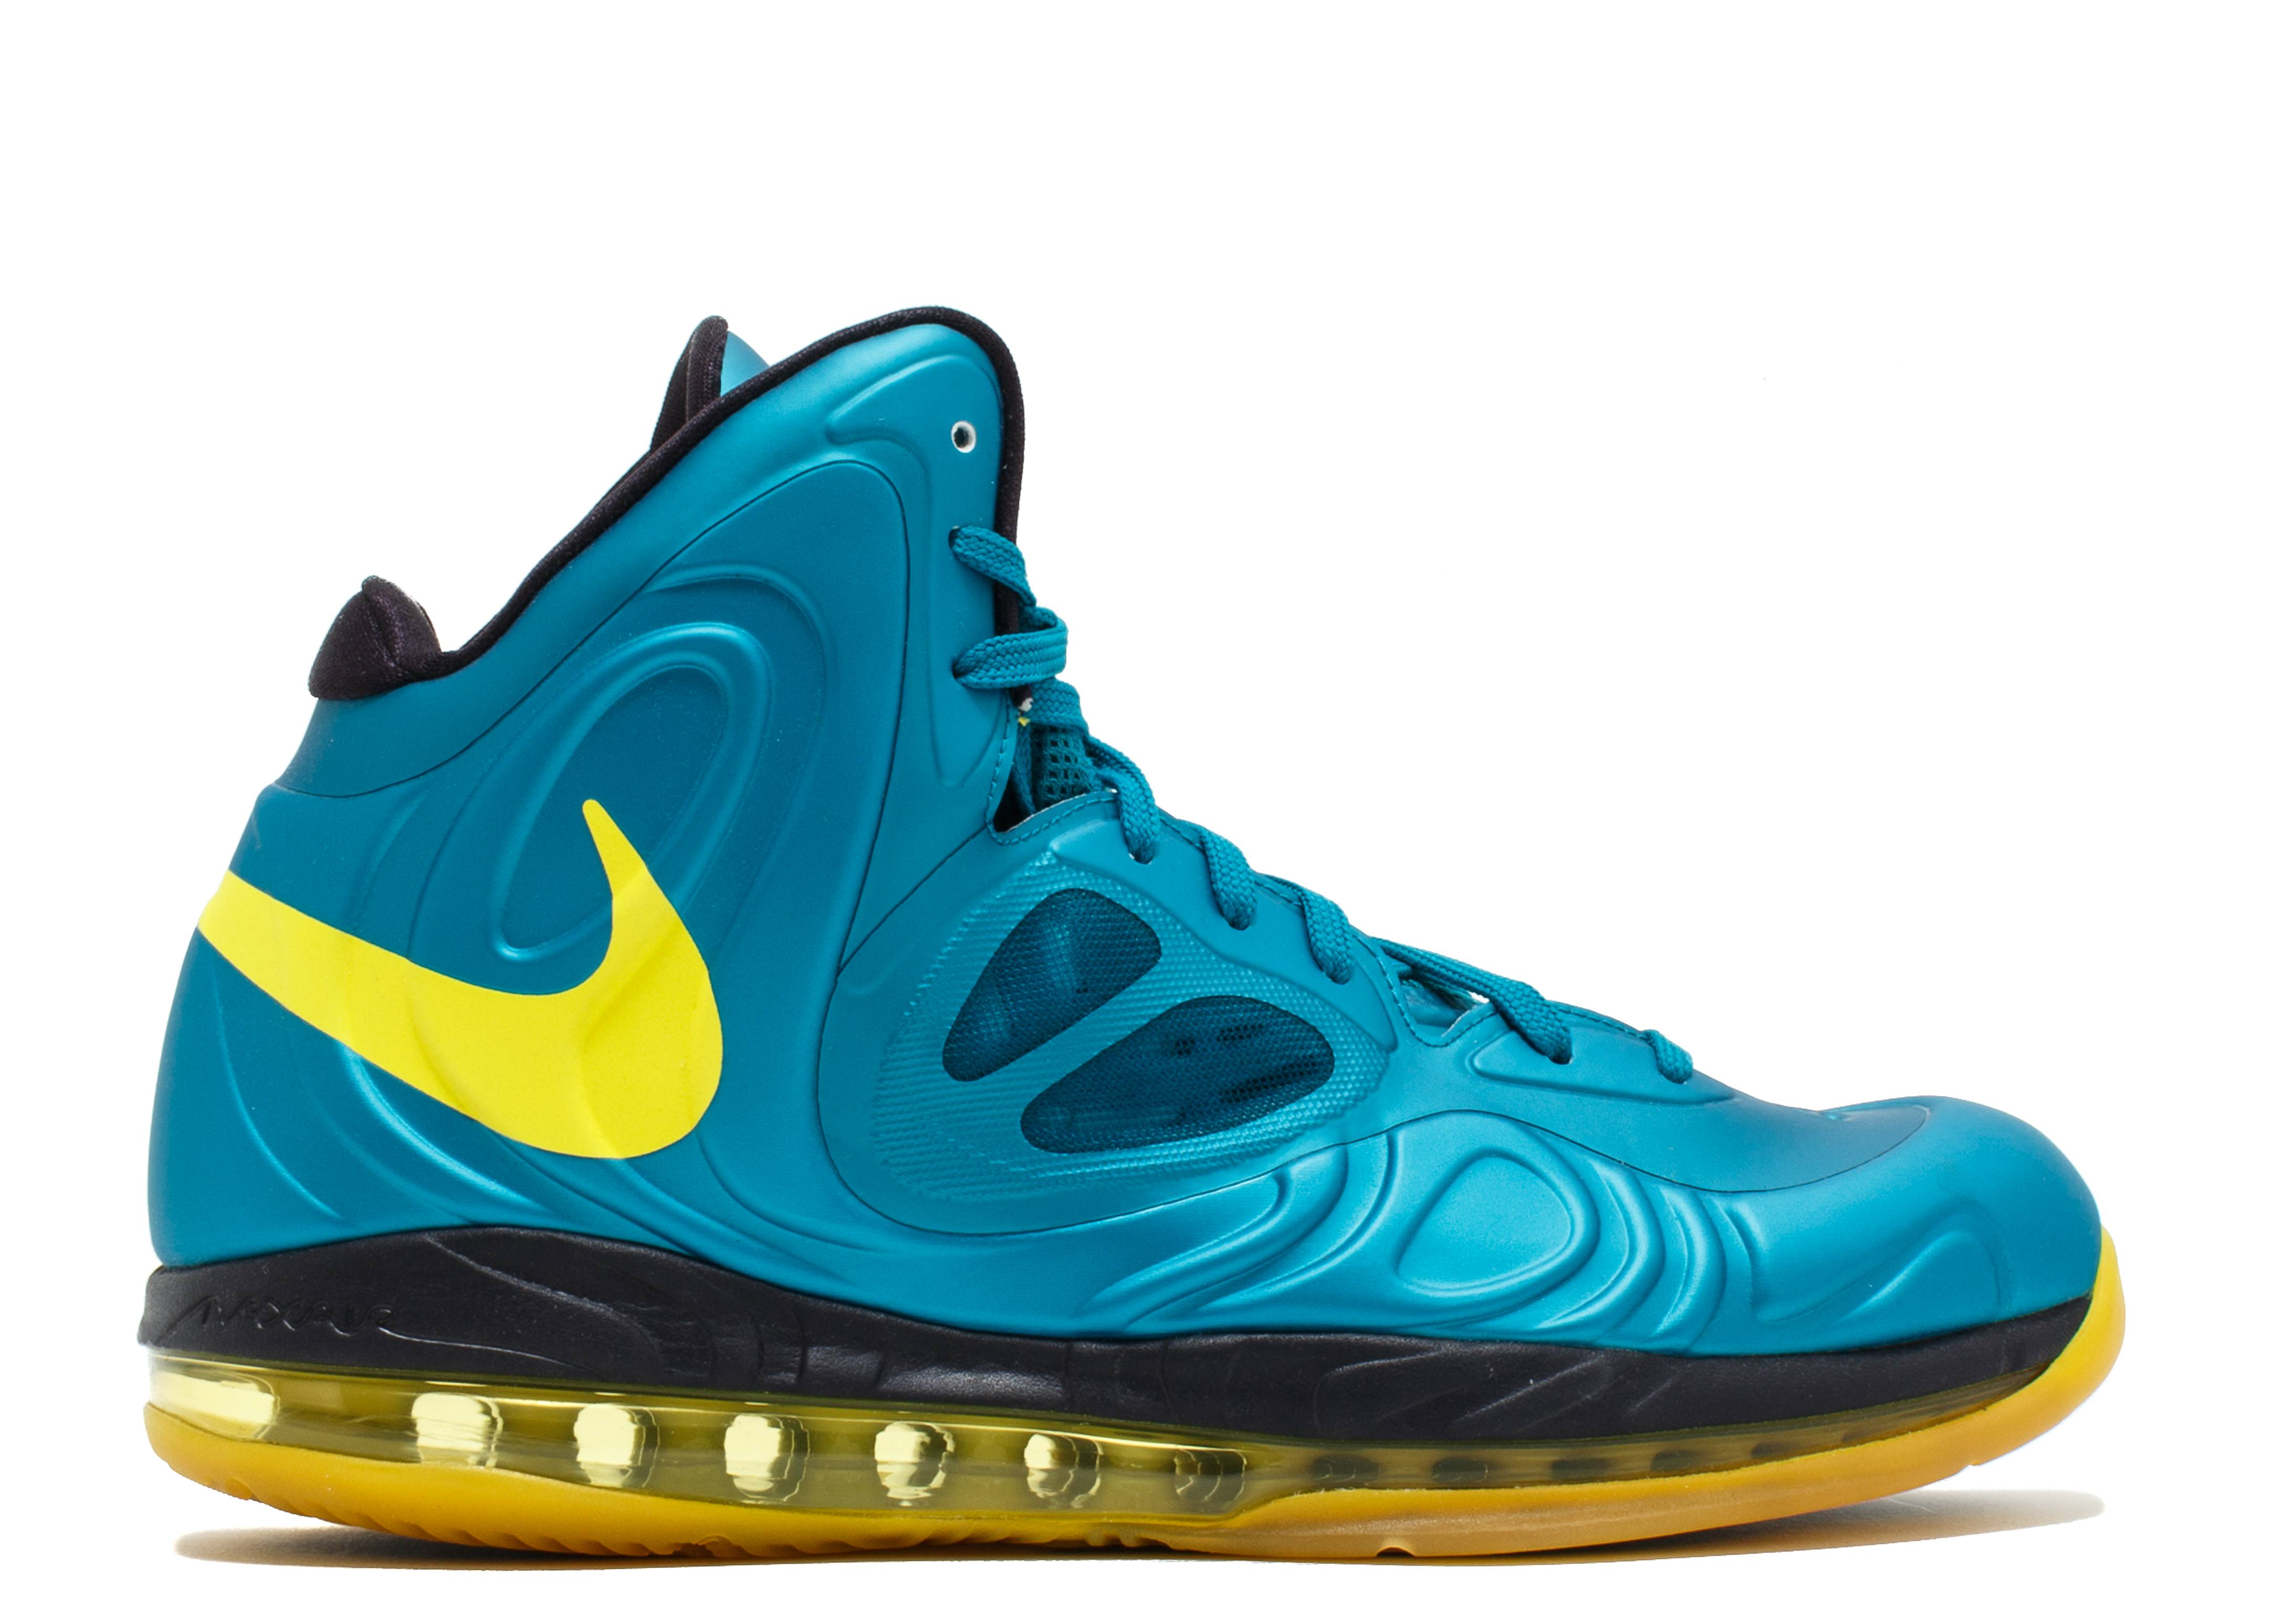 403a359ef8f Air Max Hyperposite - Nike - 524862 303 - tropical teal snc yllw ...